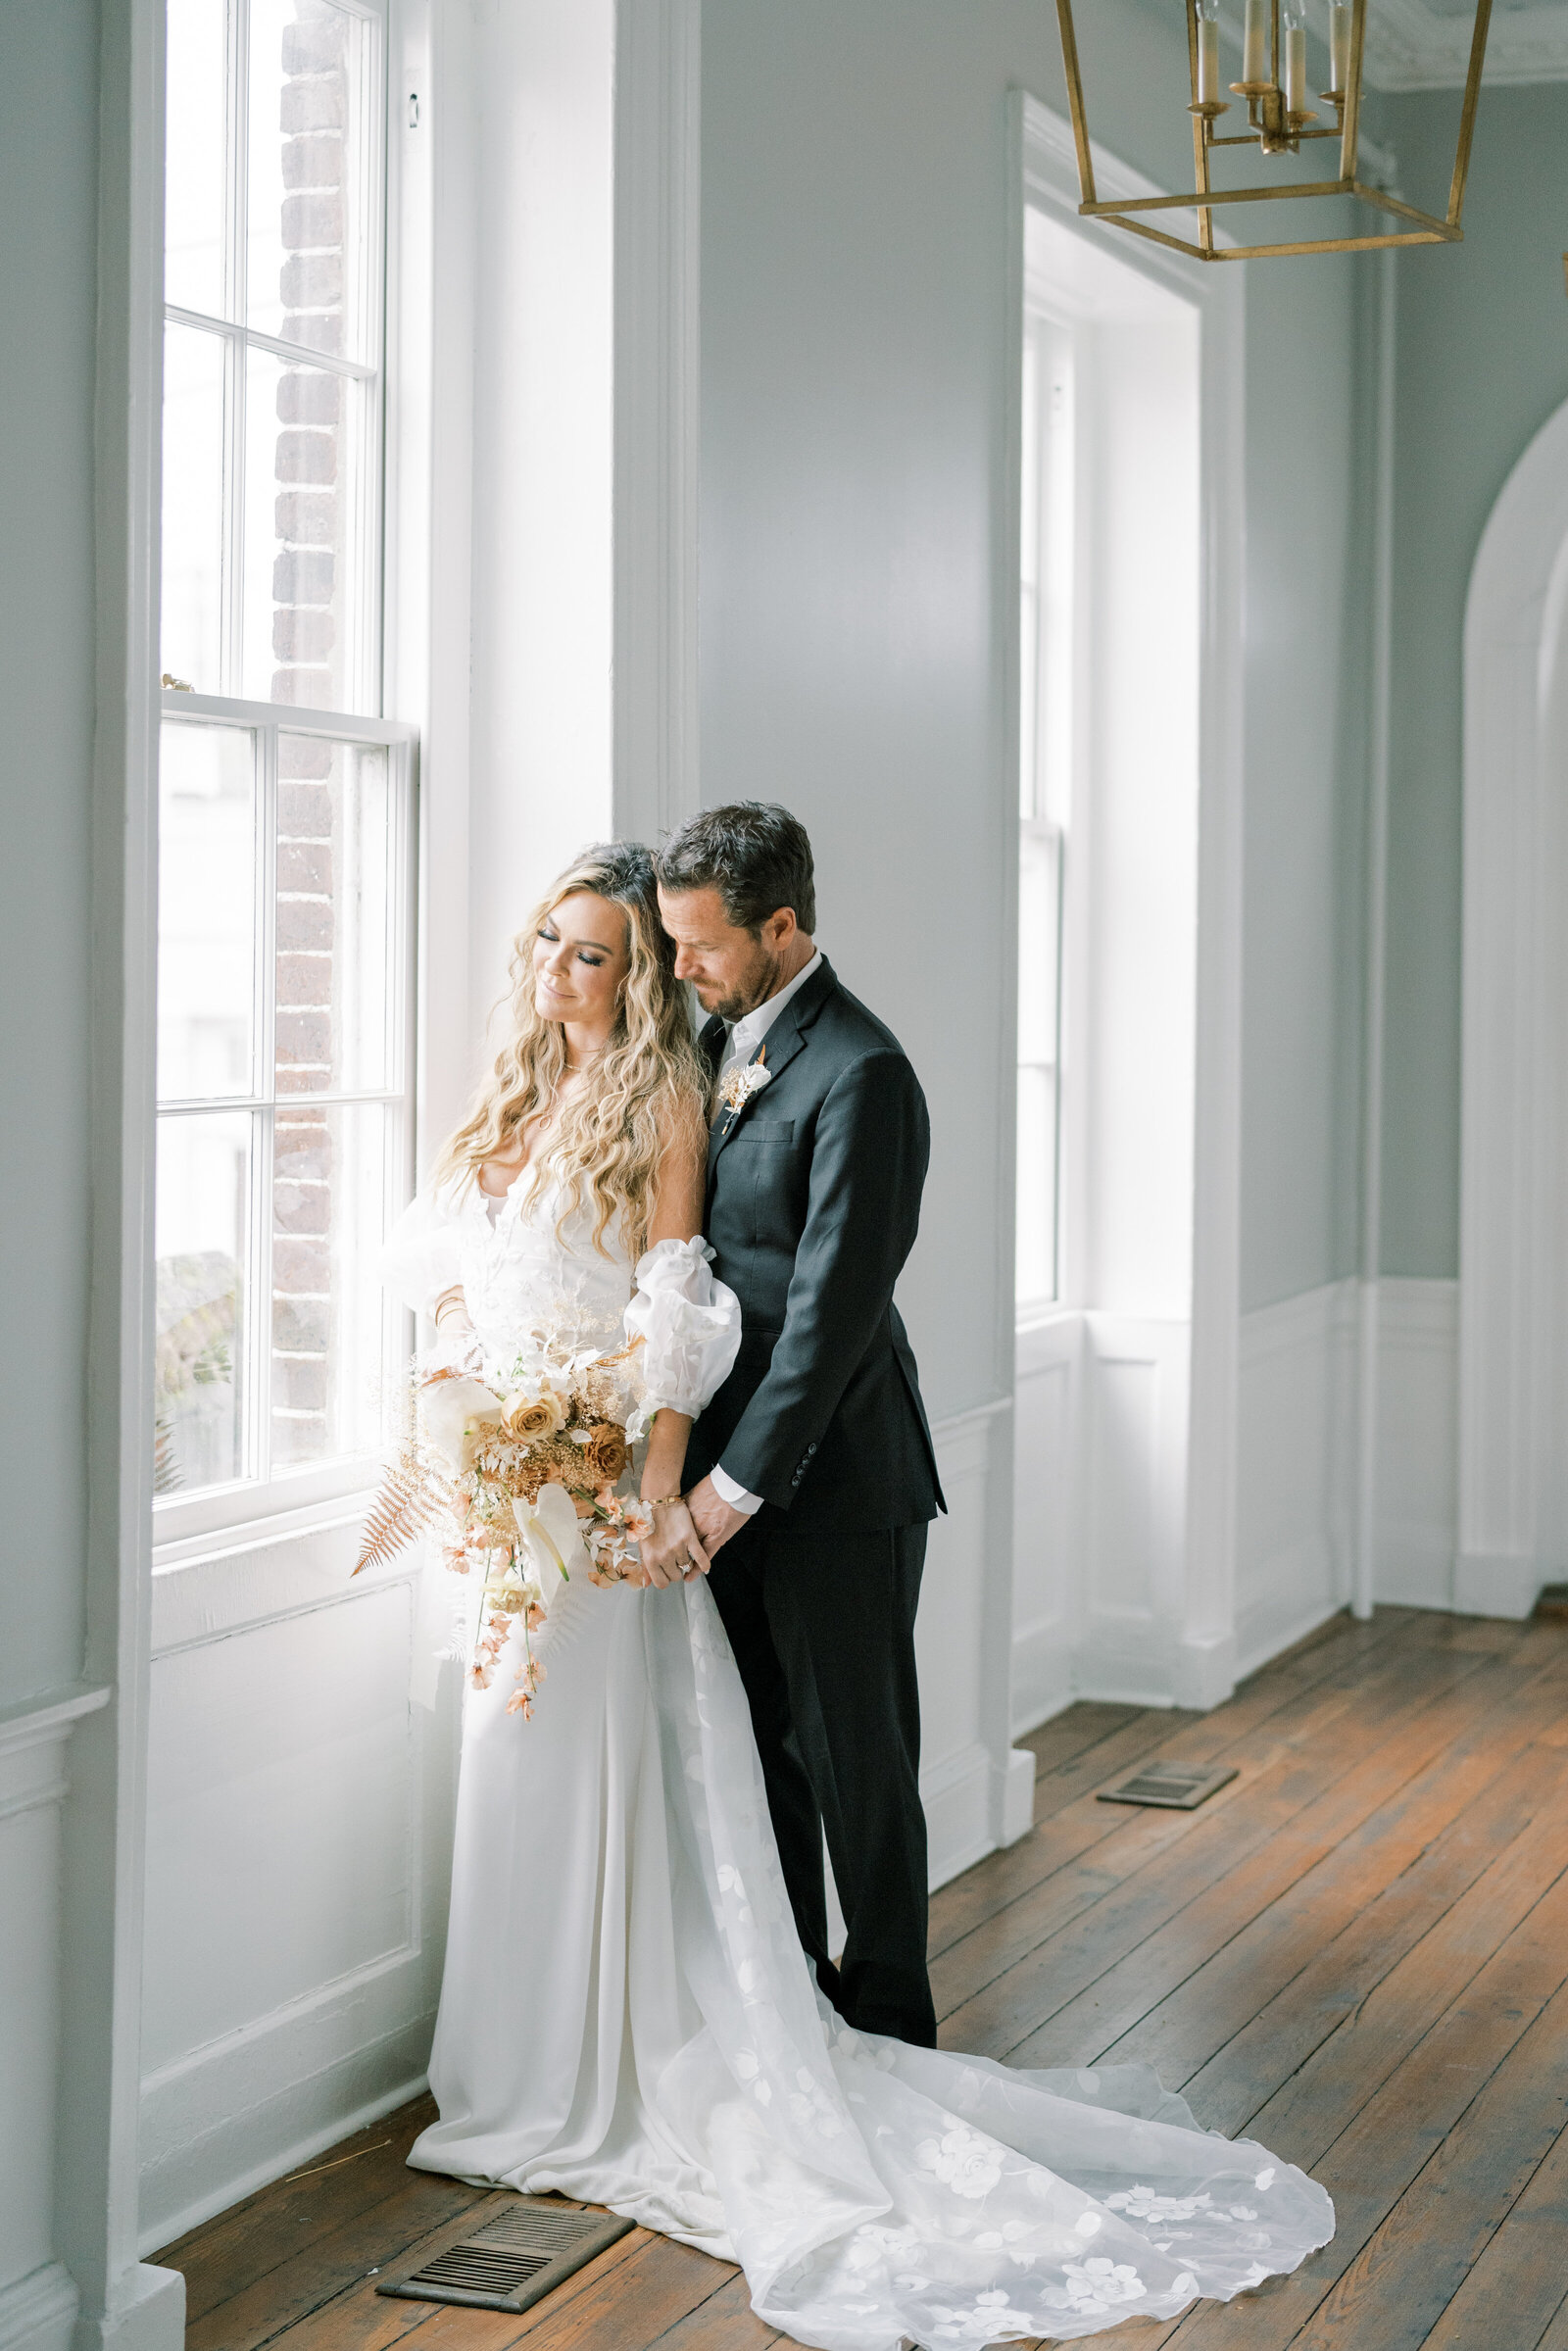 bride and groom standing at window  holding hands and looking outside at the gadsden house in charleston south carolina